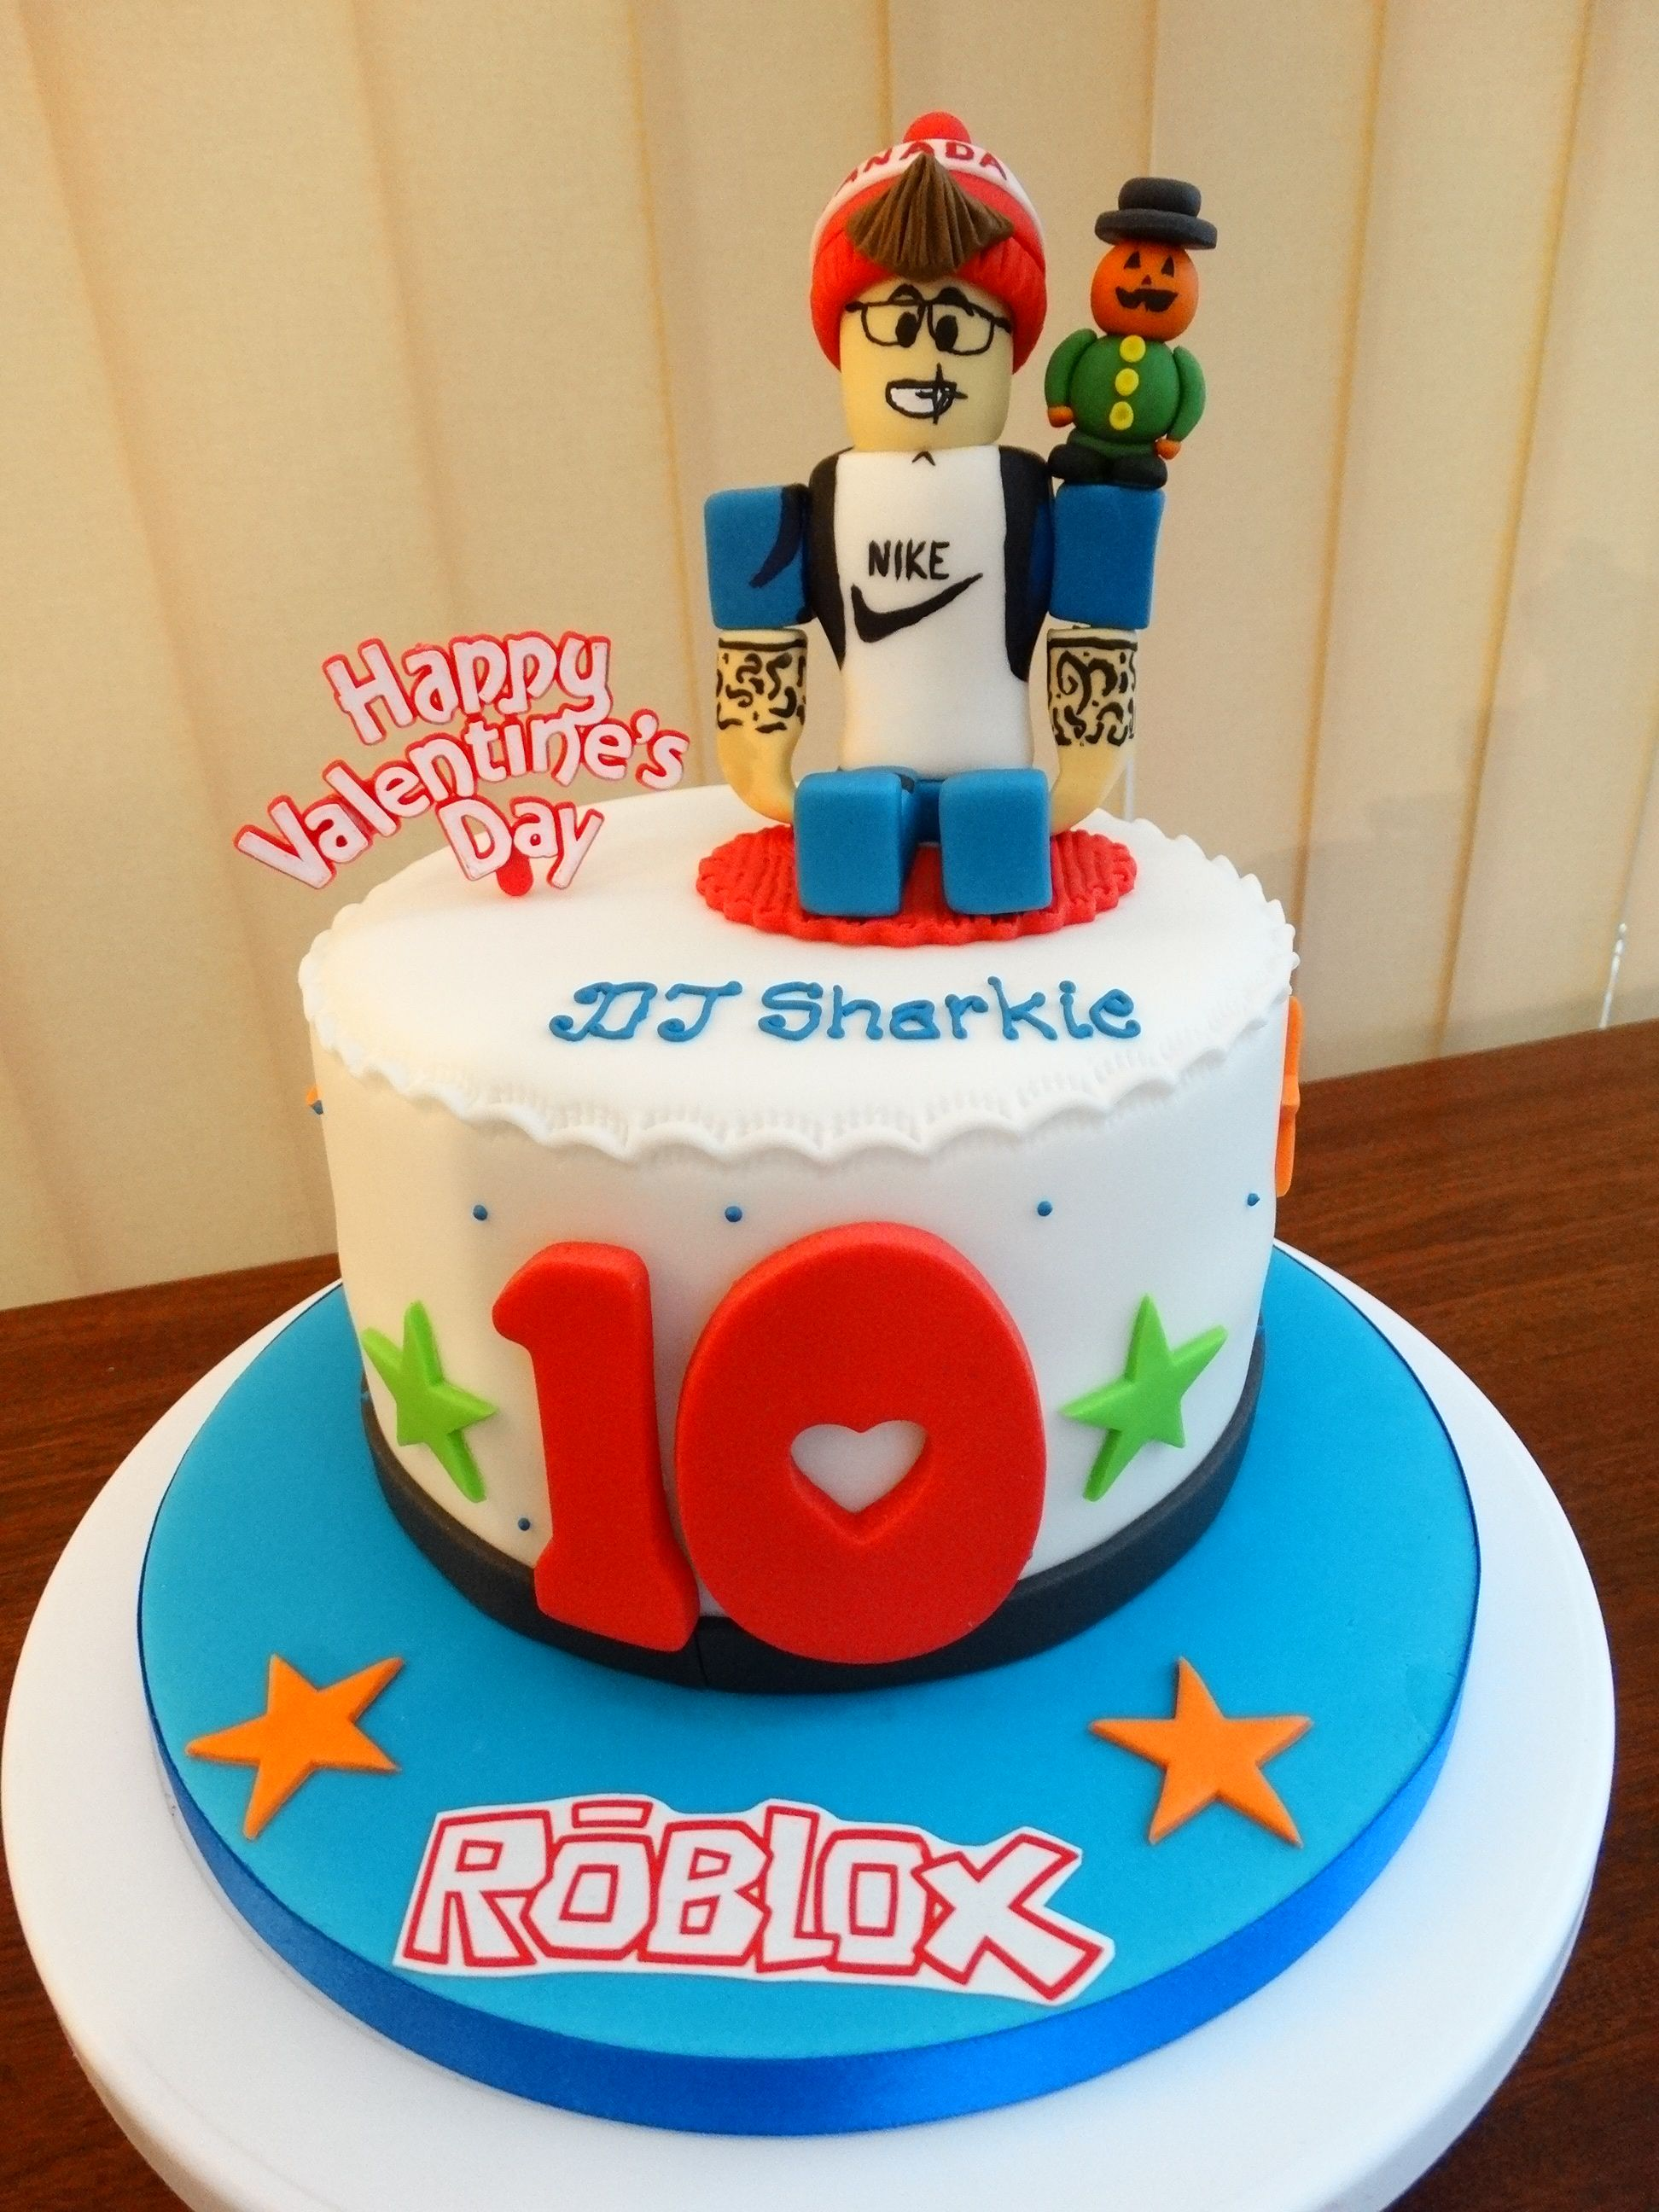 Roblox Cake Xmcx With Images Roblox Birthday Cake Birthday